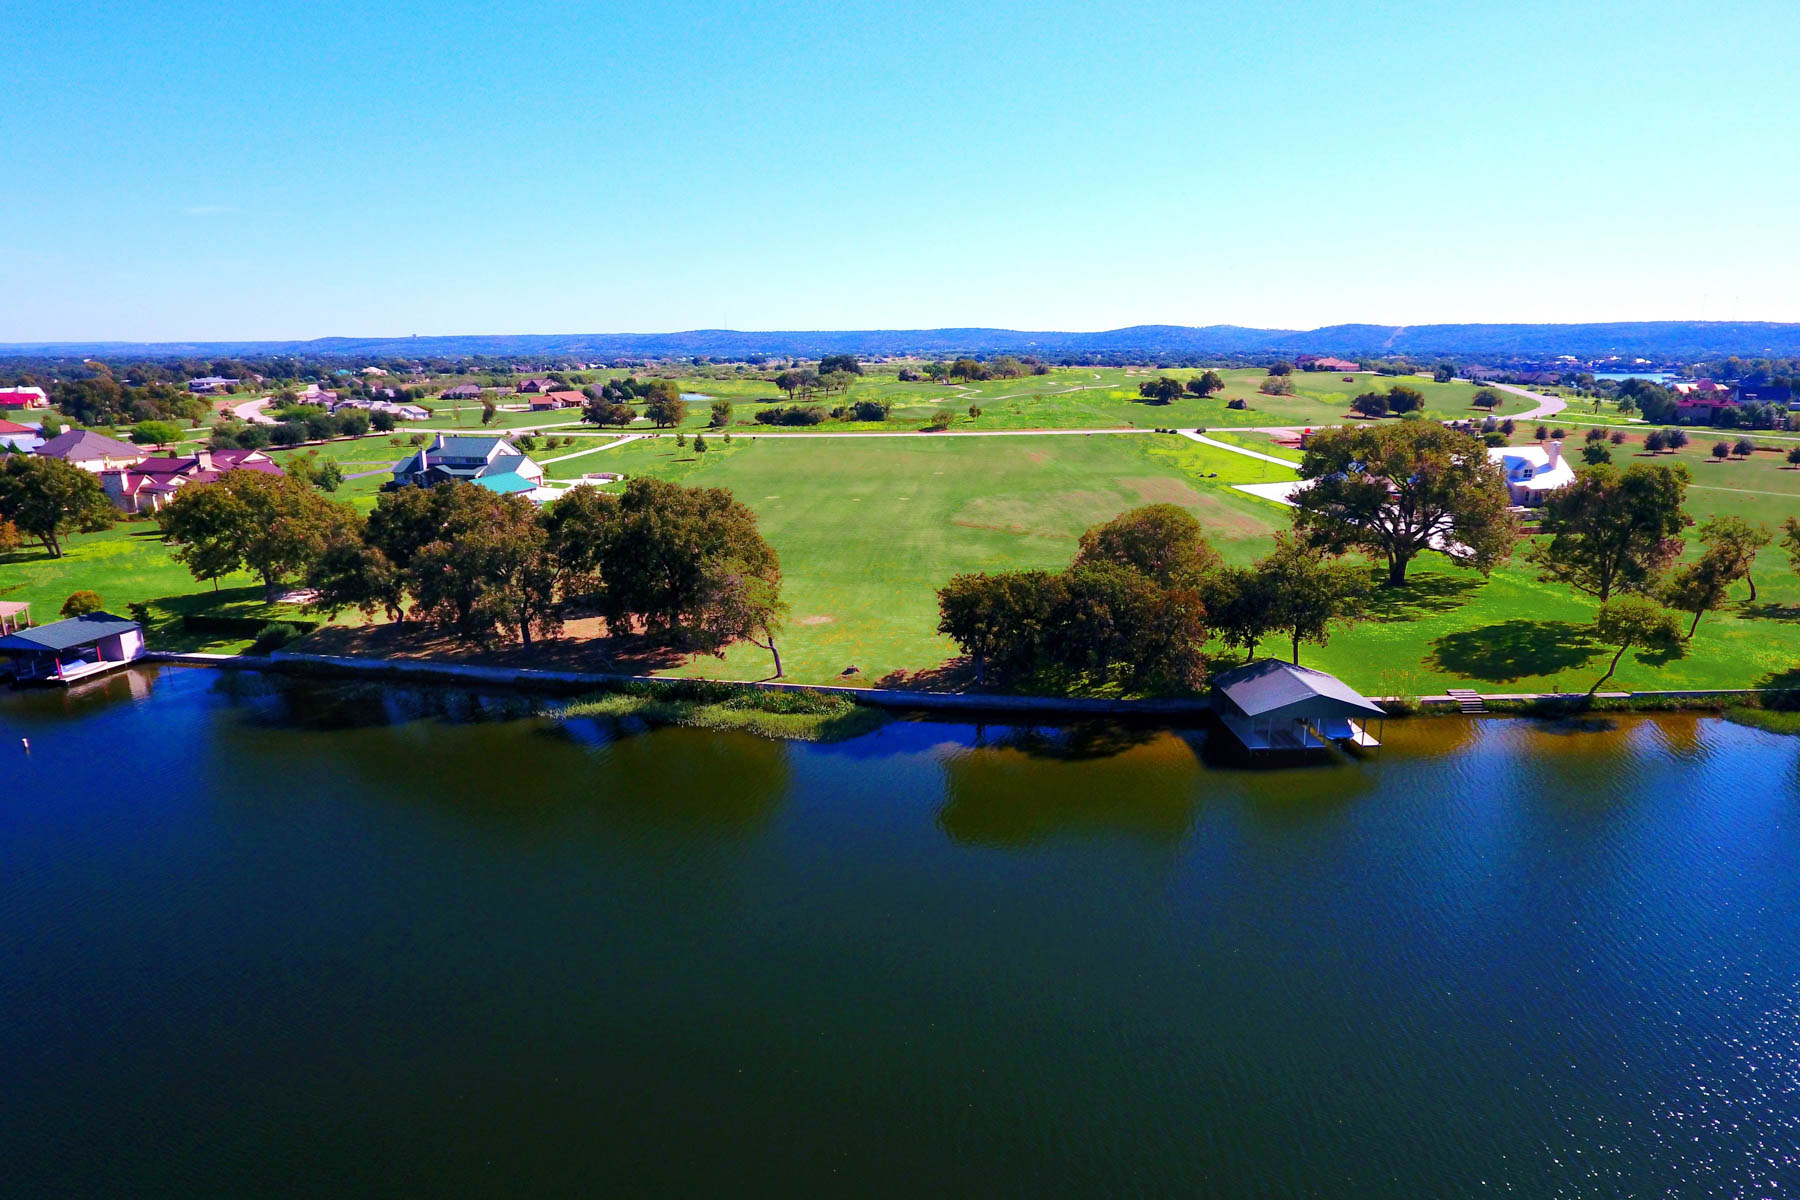 Terreno por un Venta en Exceptional Waterfront Estate Site in The Legends on Lake LBJ Lot 1040 Legends Pkwy Kingsland, Texas 78639 Estados Unidos